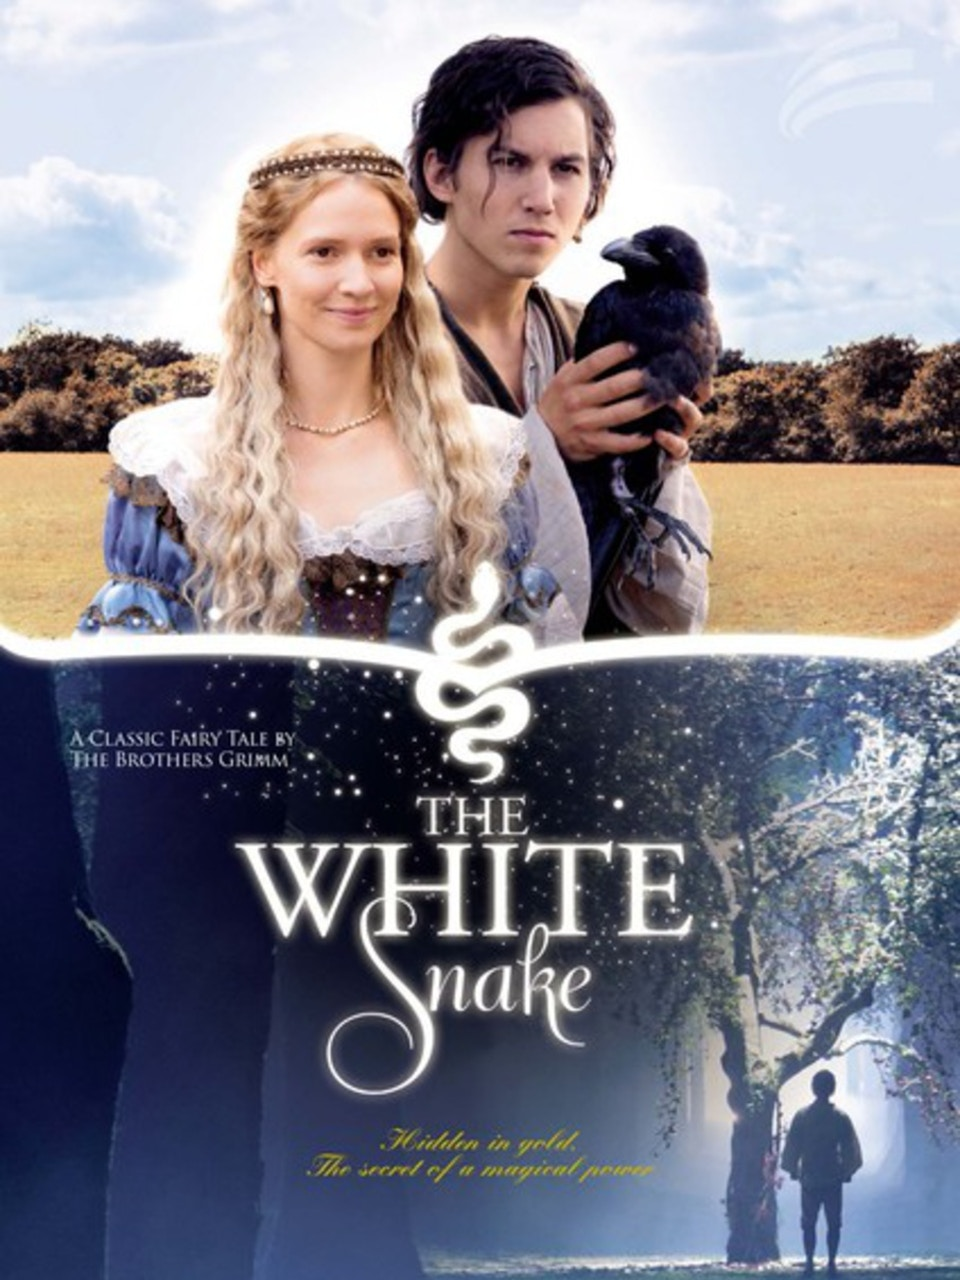 The White Snake (ZDF)